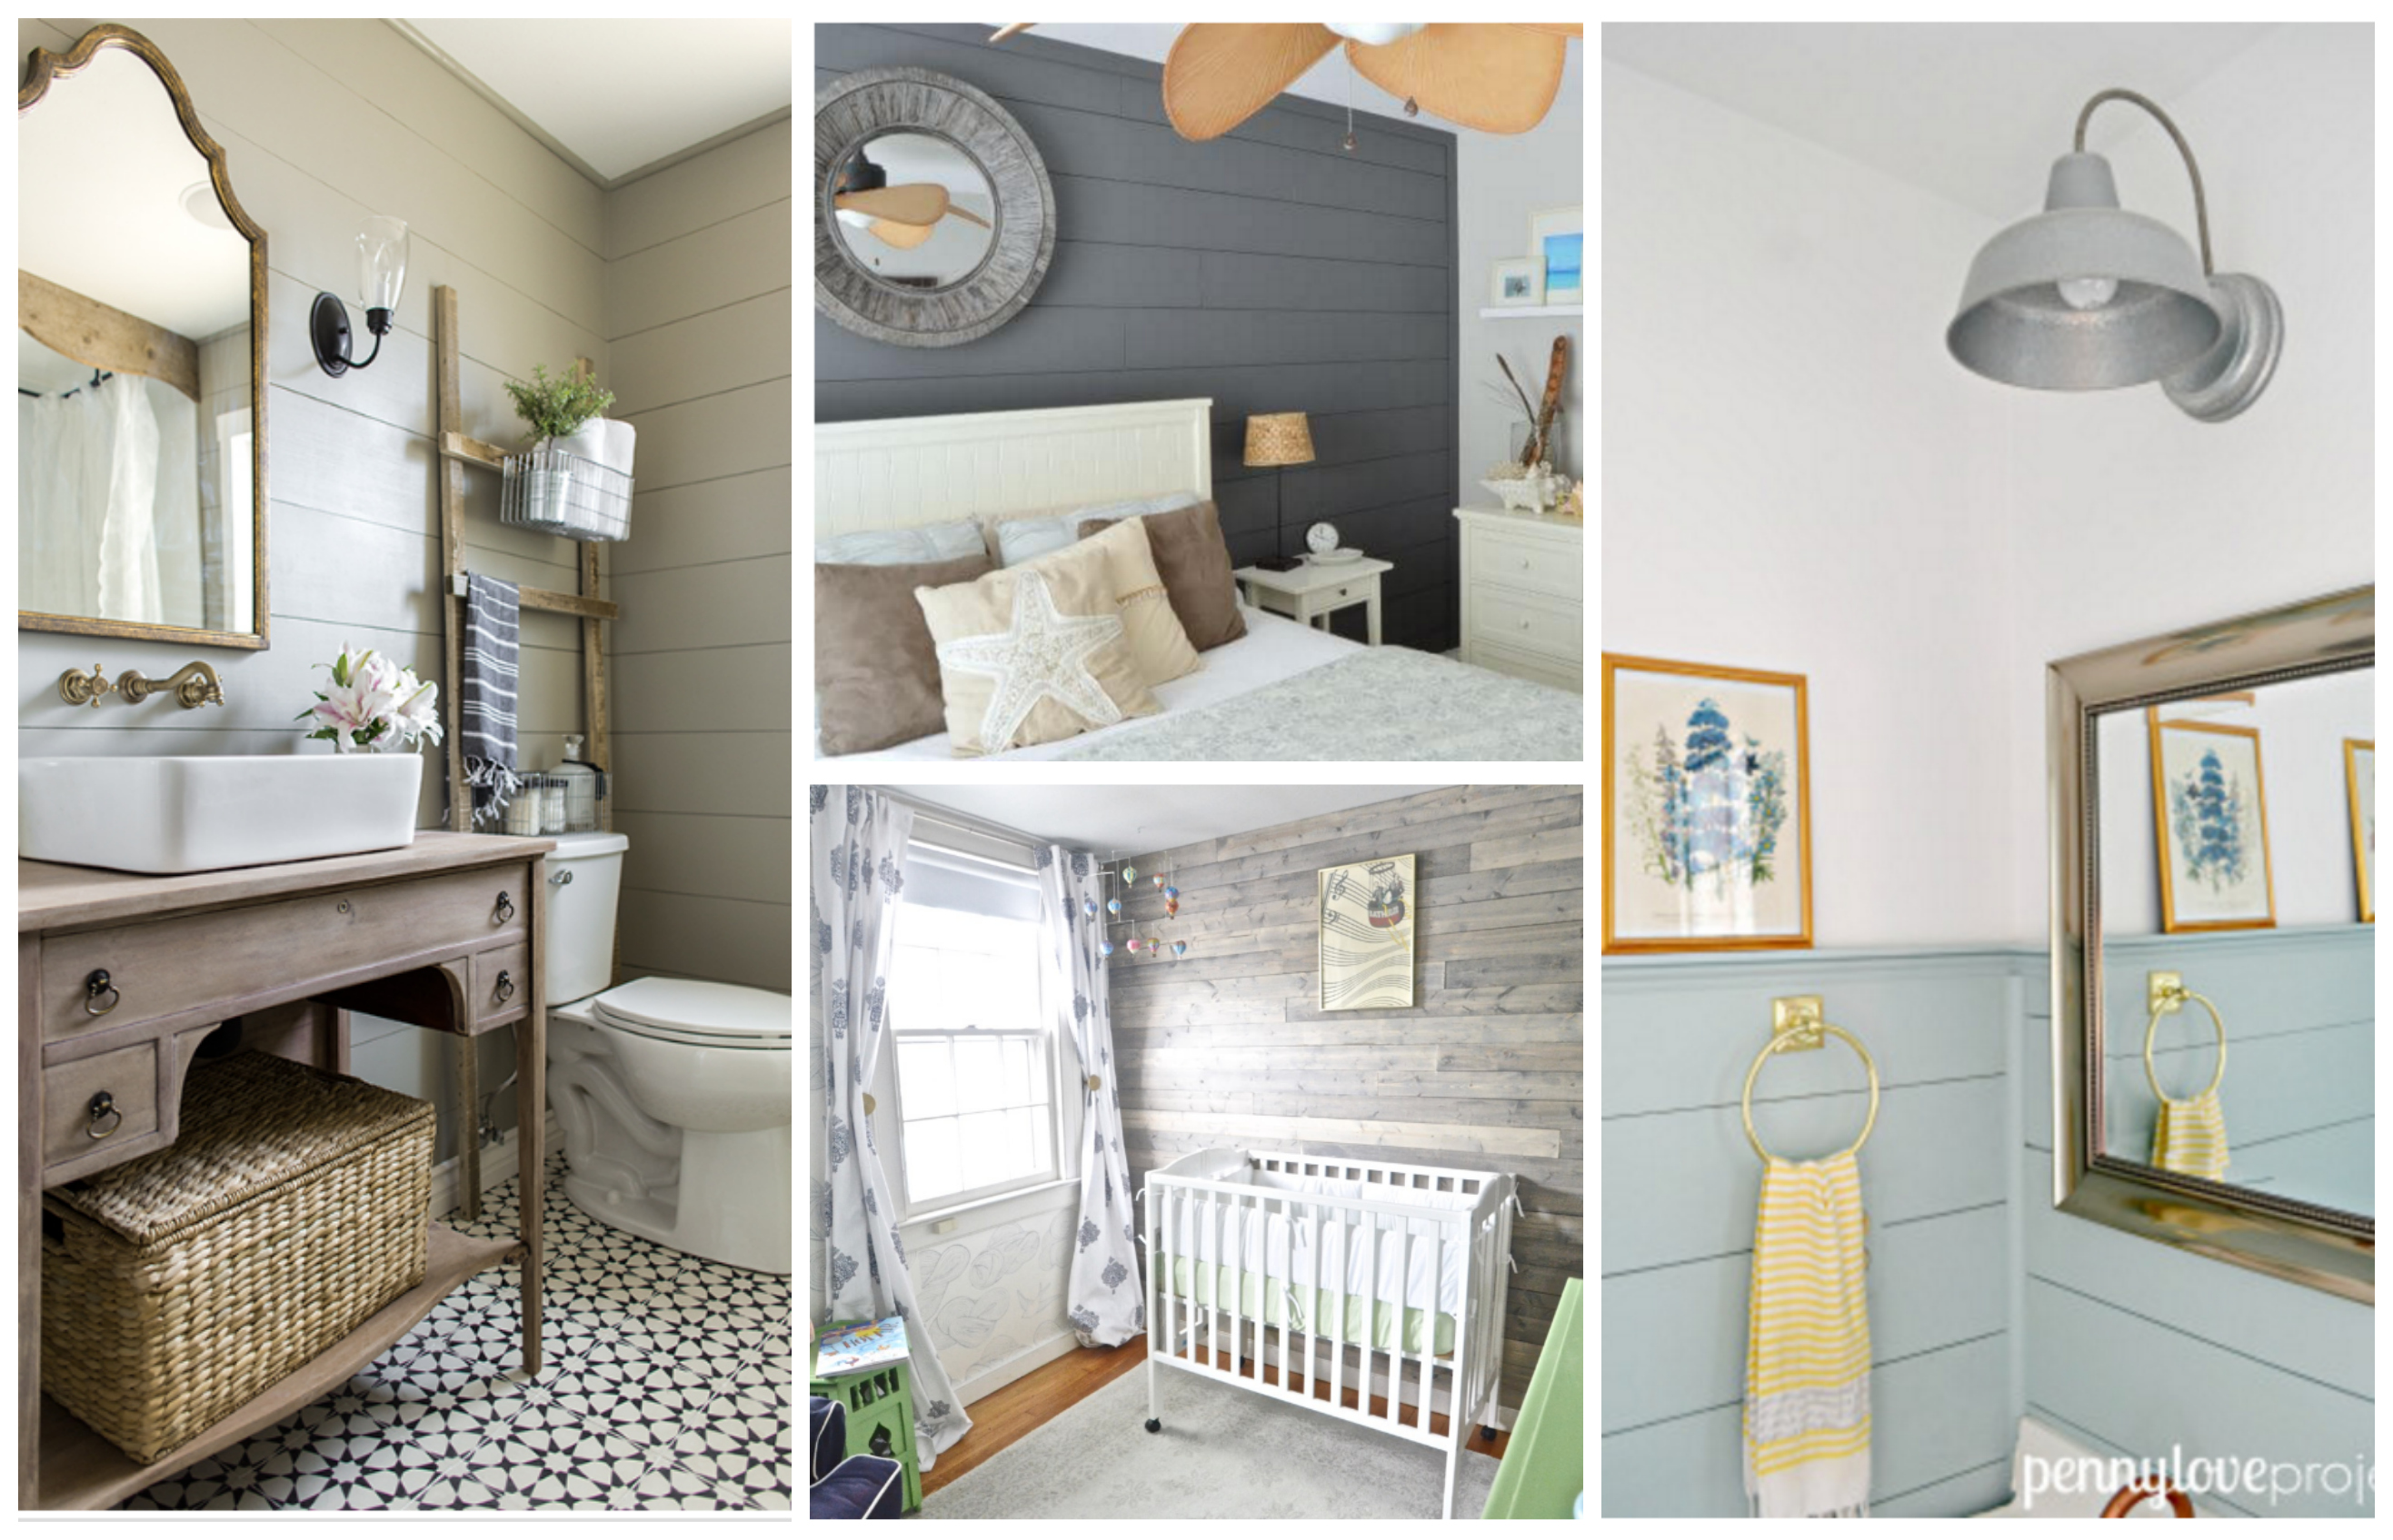 Awesome Non-White Shiplap Decorating Ideas That Work With ...